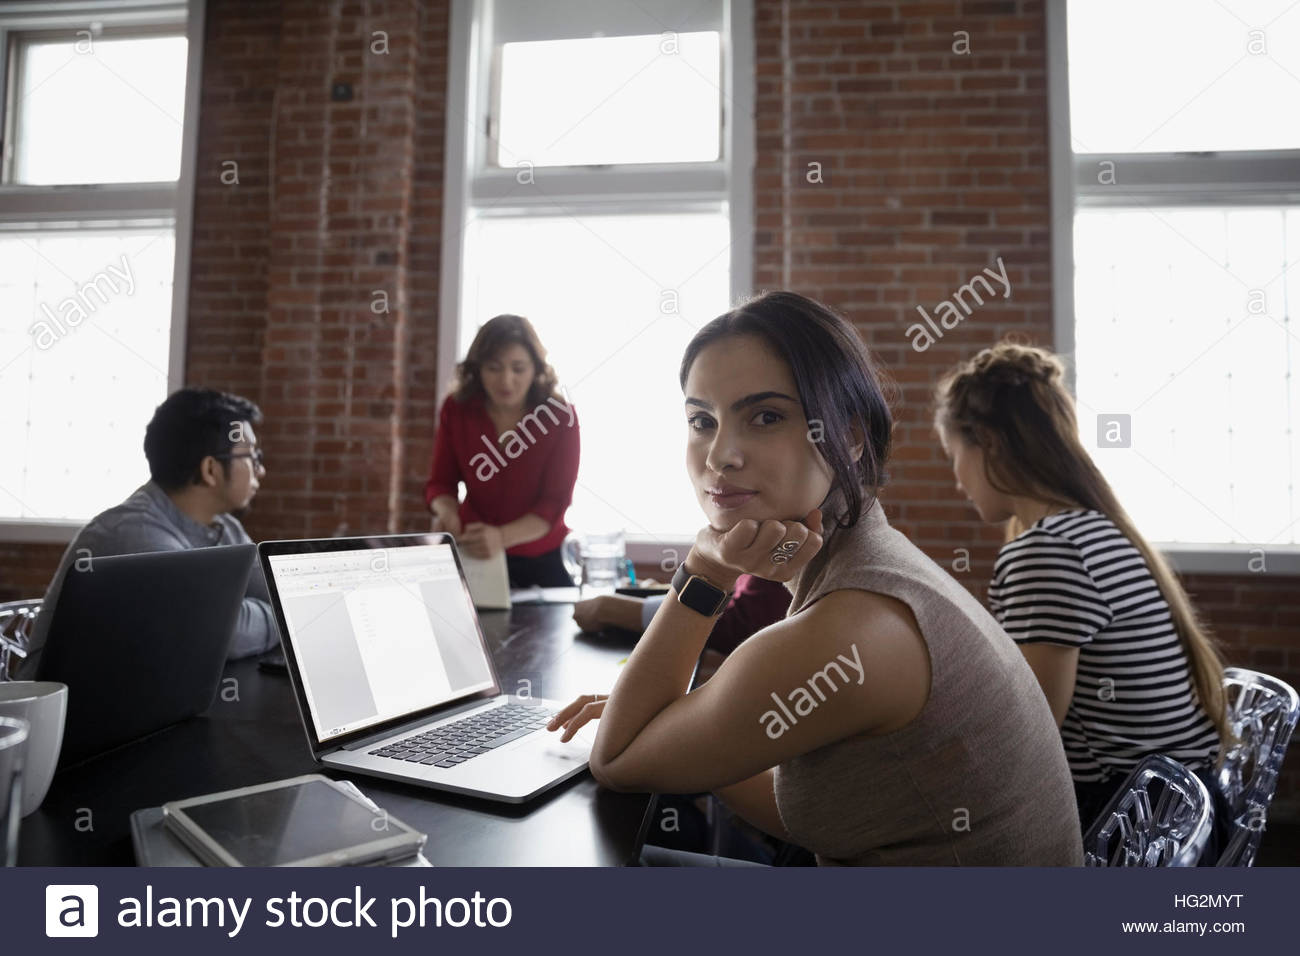 Portrait of smiling businesswoman using laptop in conference room meeting Photo Stock